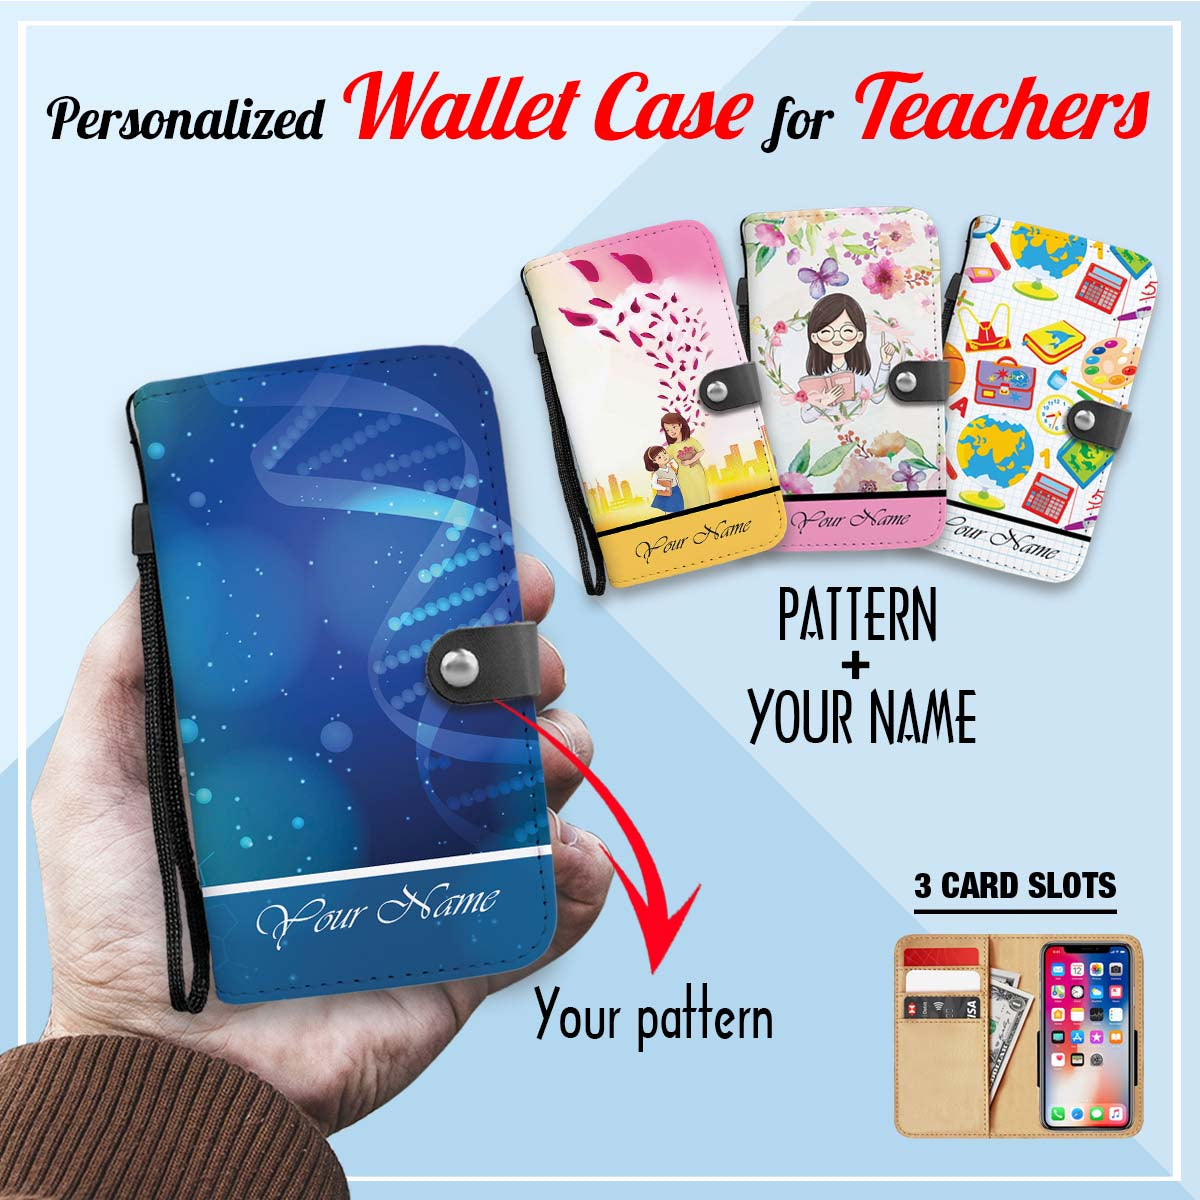 PERSONALIZED WALLET CASE - upload your favorite teacher pattern & your name